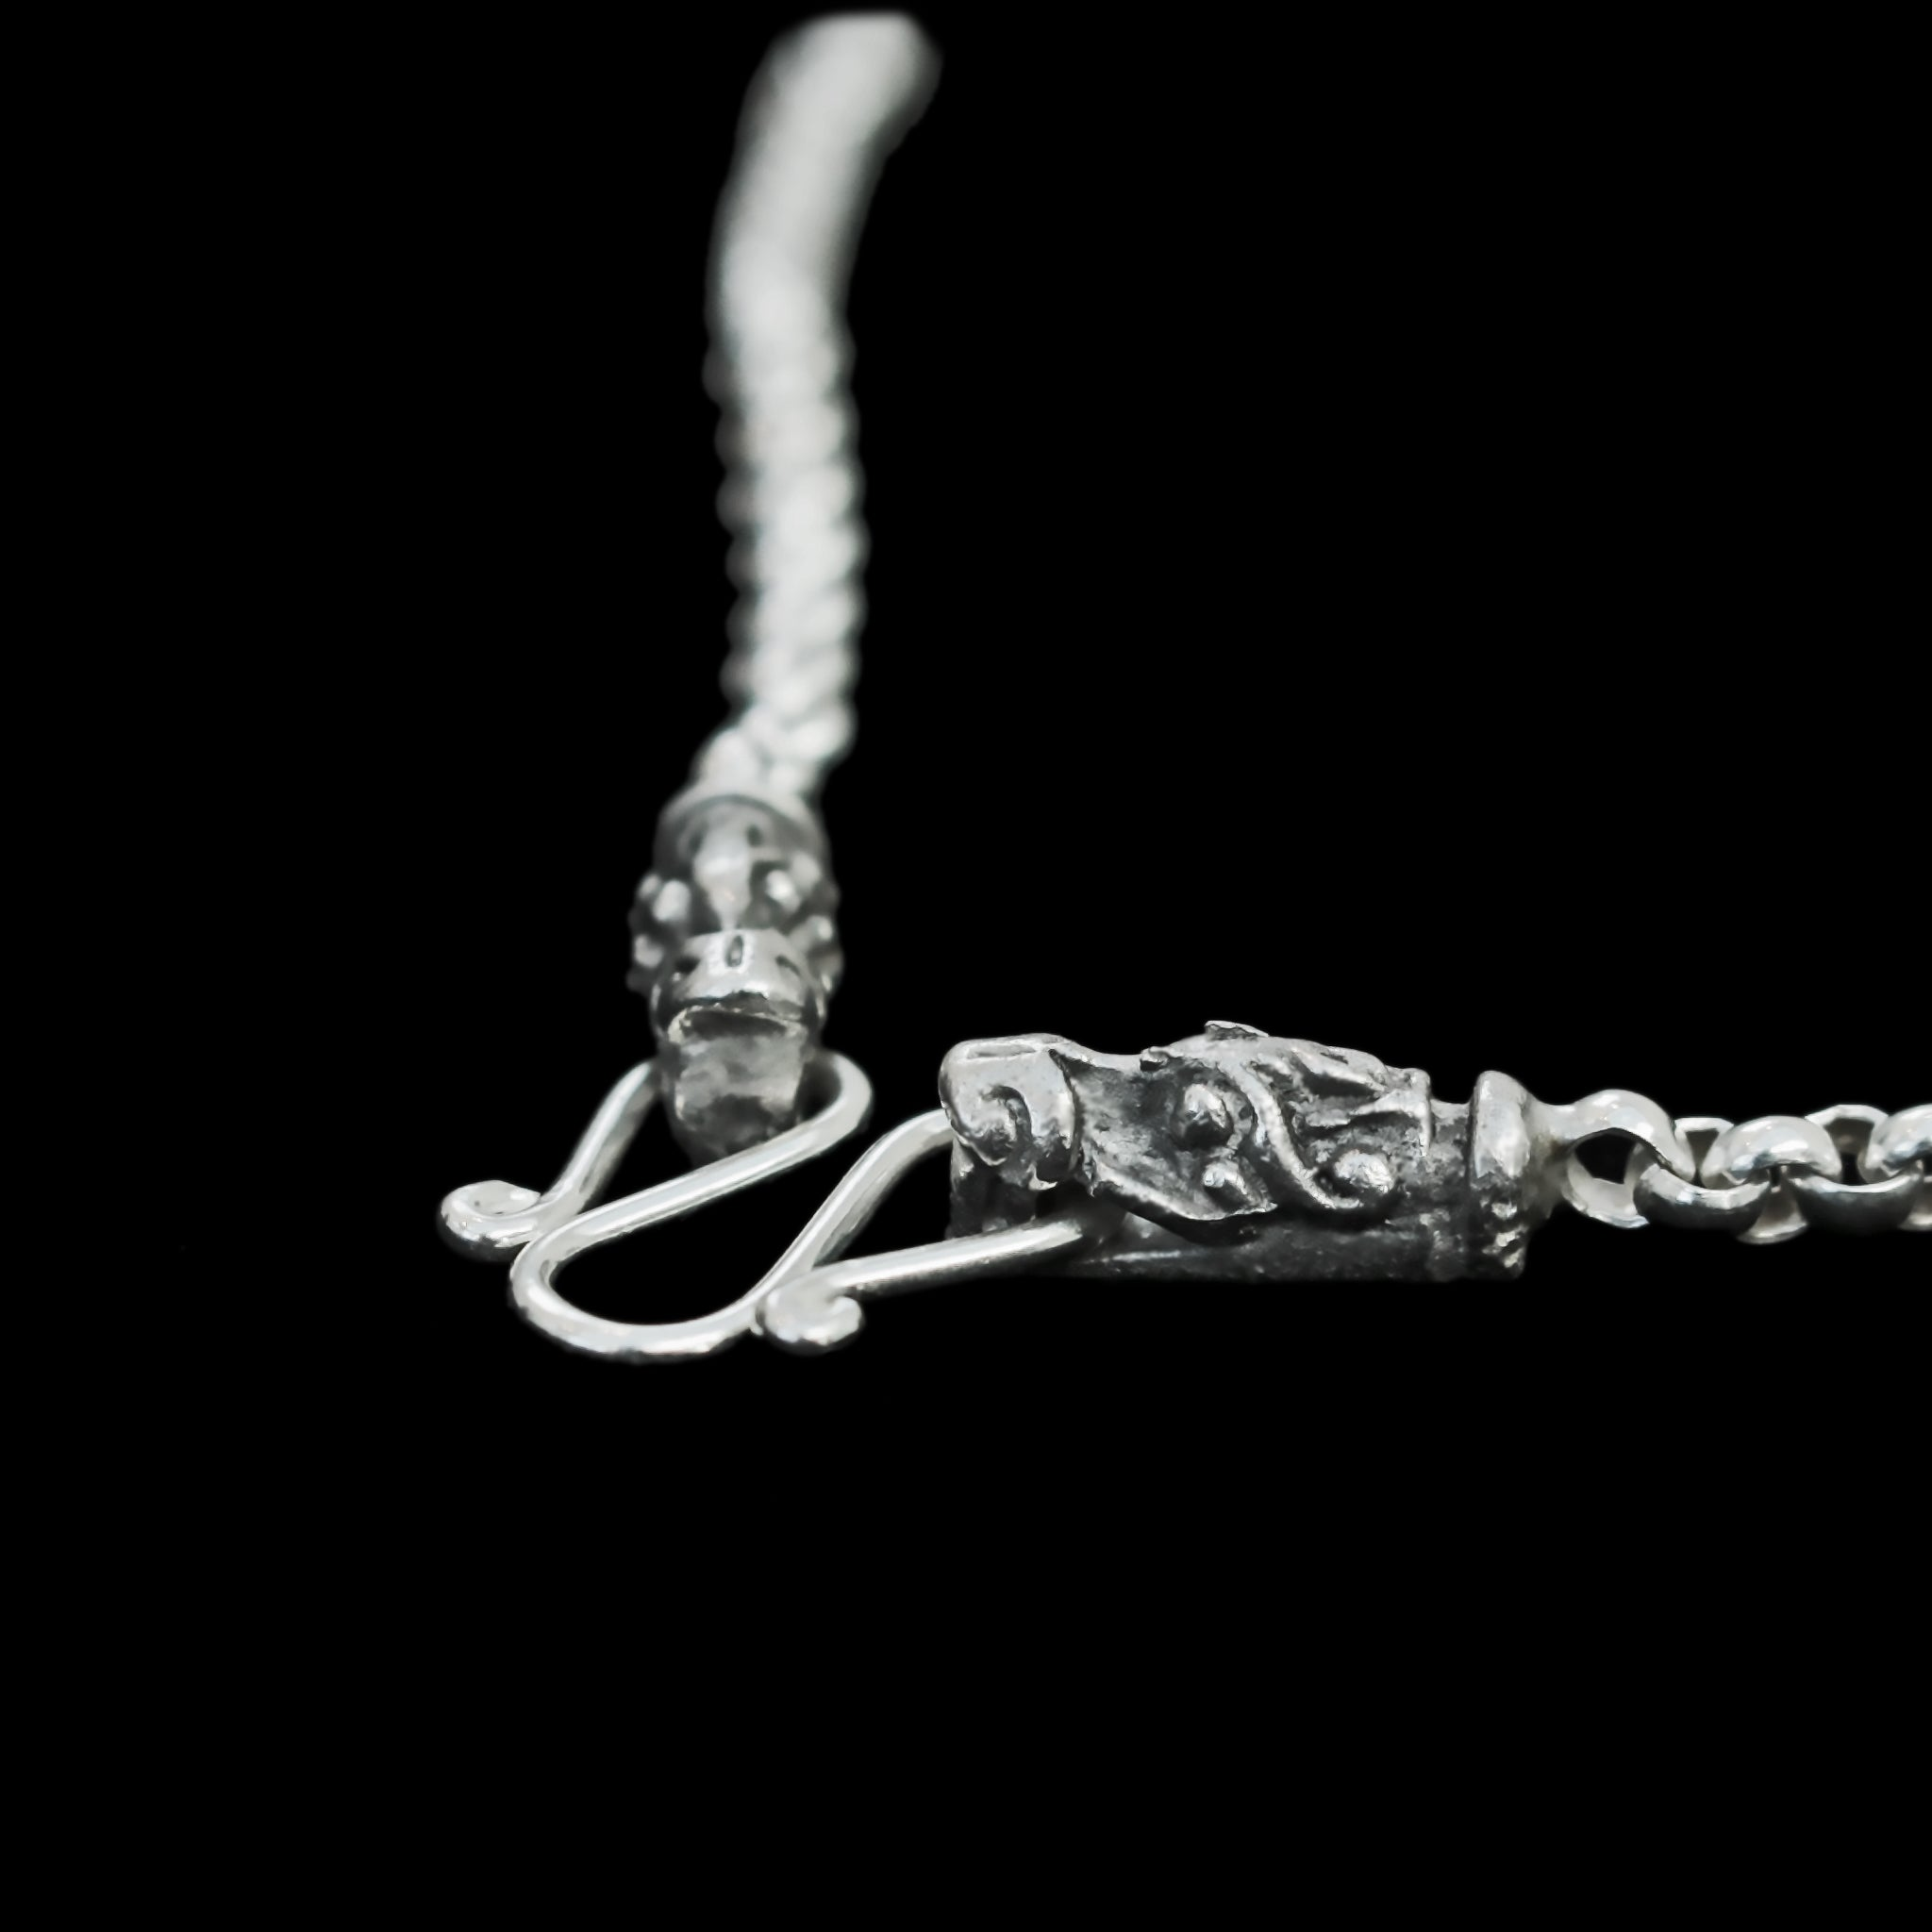 Fully Customisable Slim Silver Anchor Chain Pendant Necklace with Gotland Dragon Heads